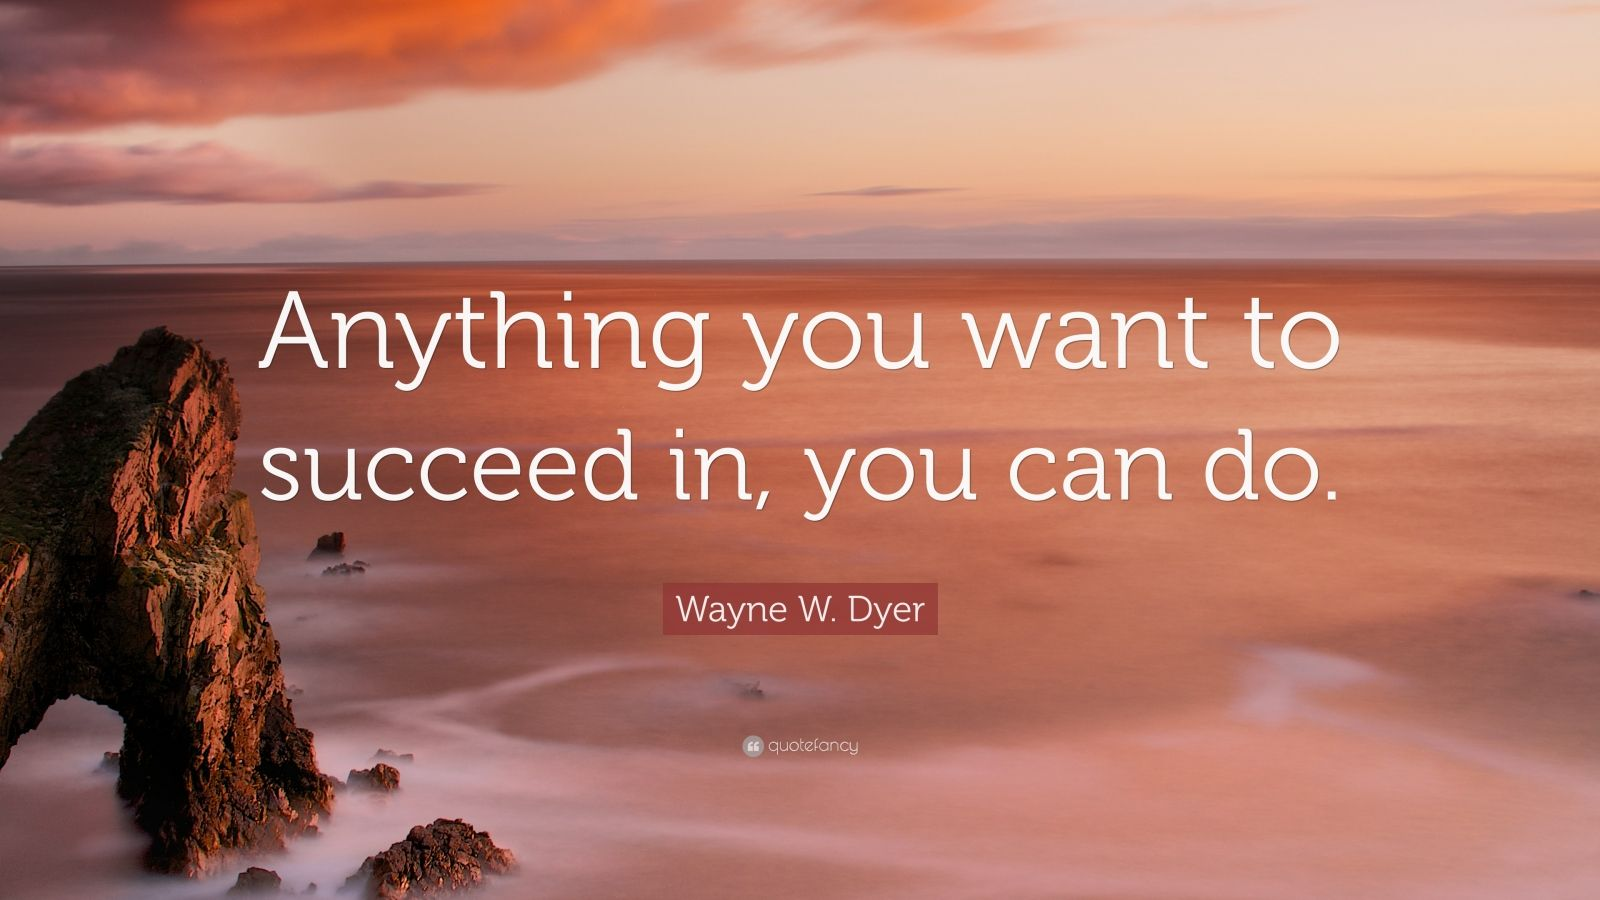 """Wayne W. Dyer Quote: """"Anything you want to succeed in, you can do."""""""